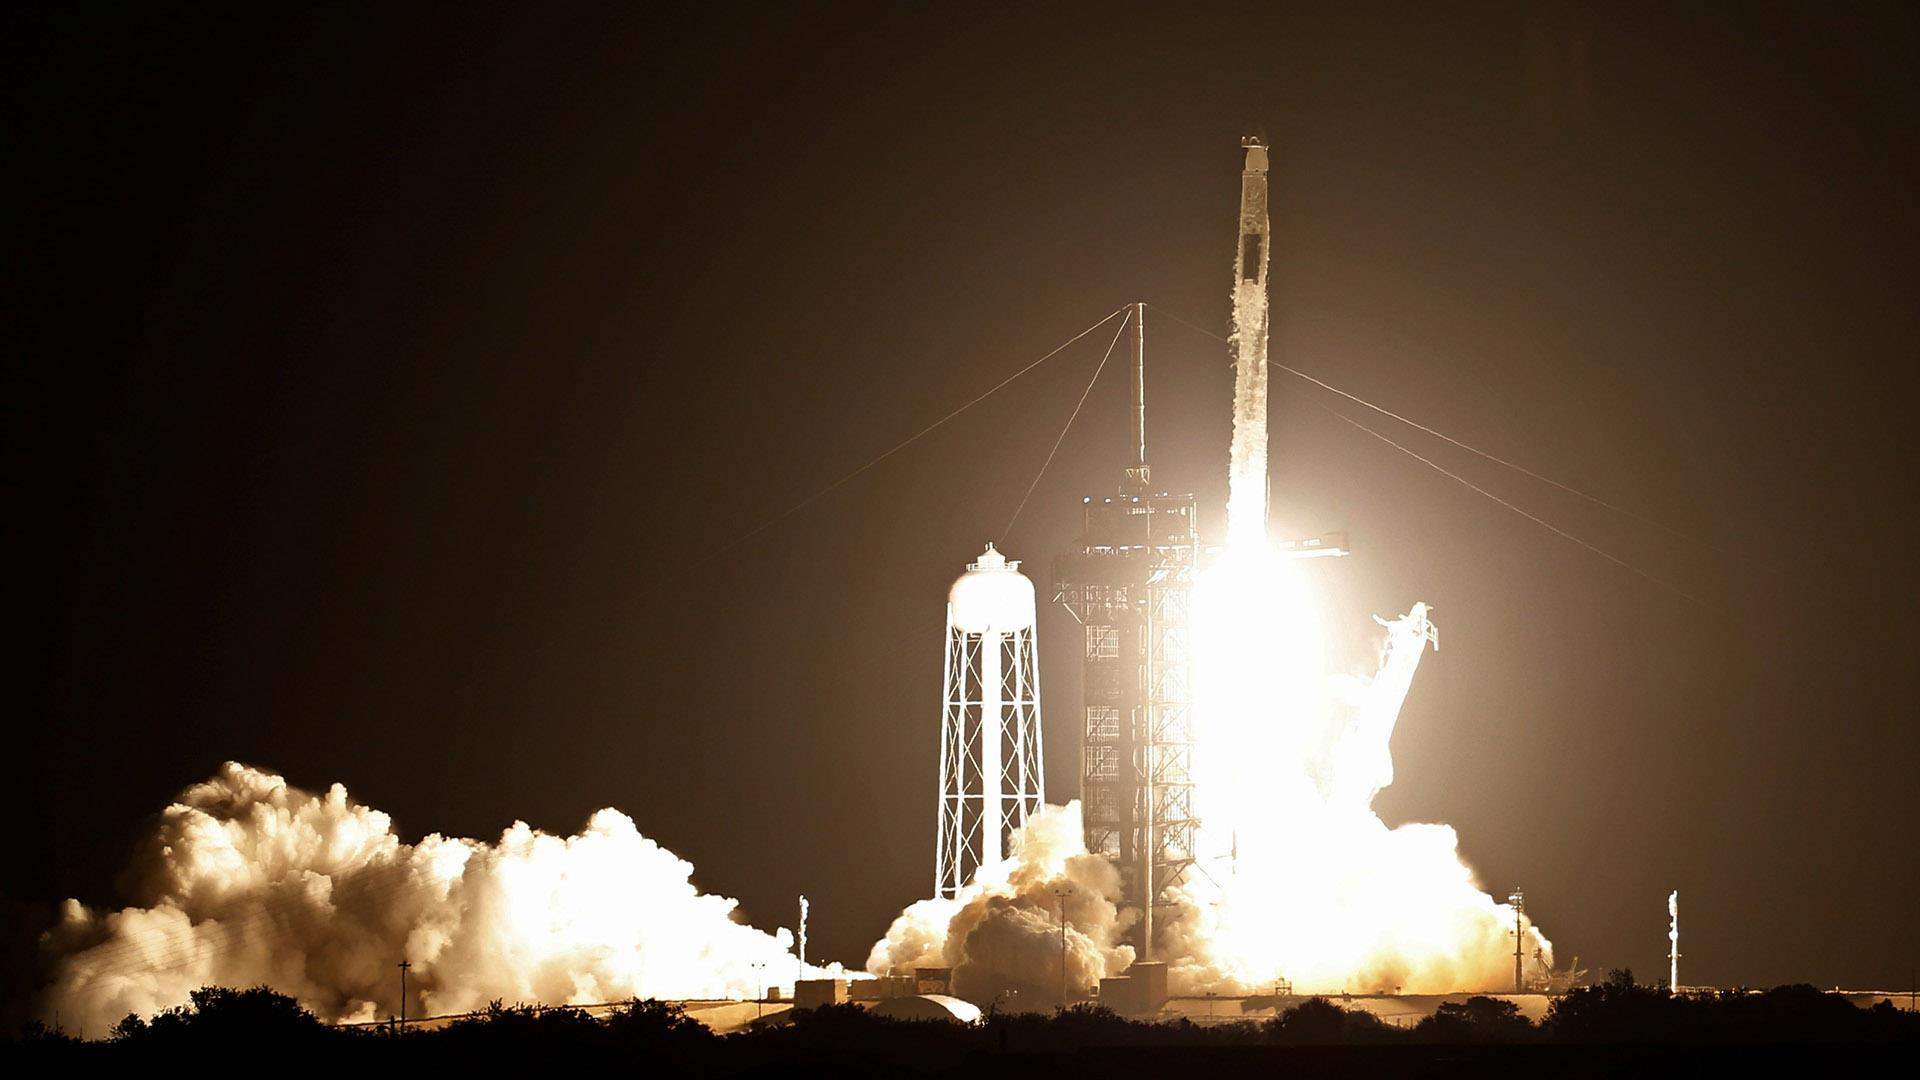 SpaceX Launches Dragon Cargo Capsule to Space Station